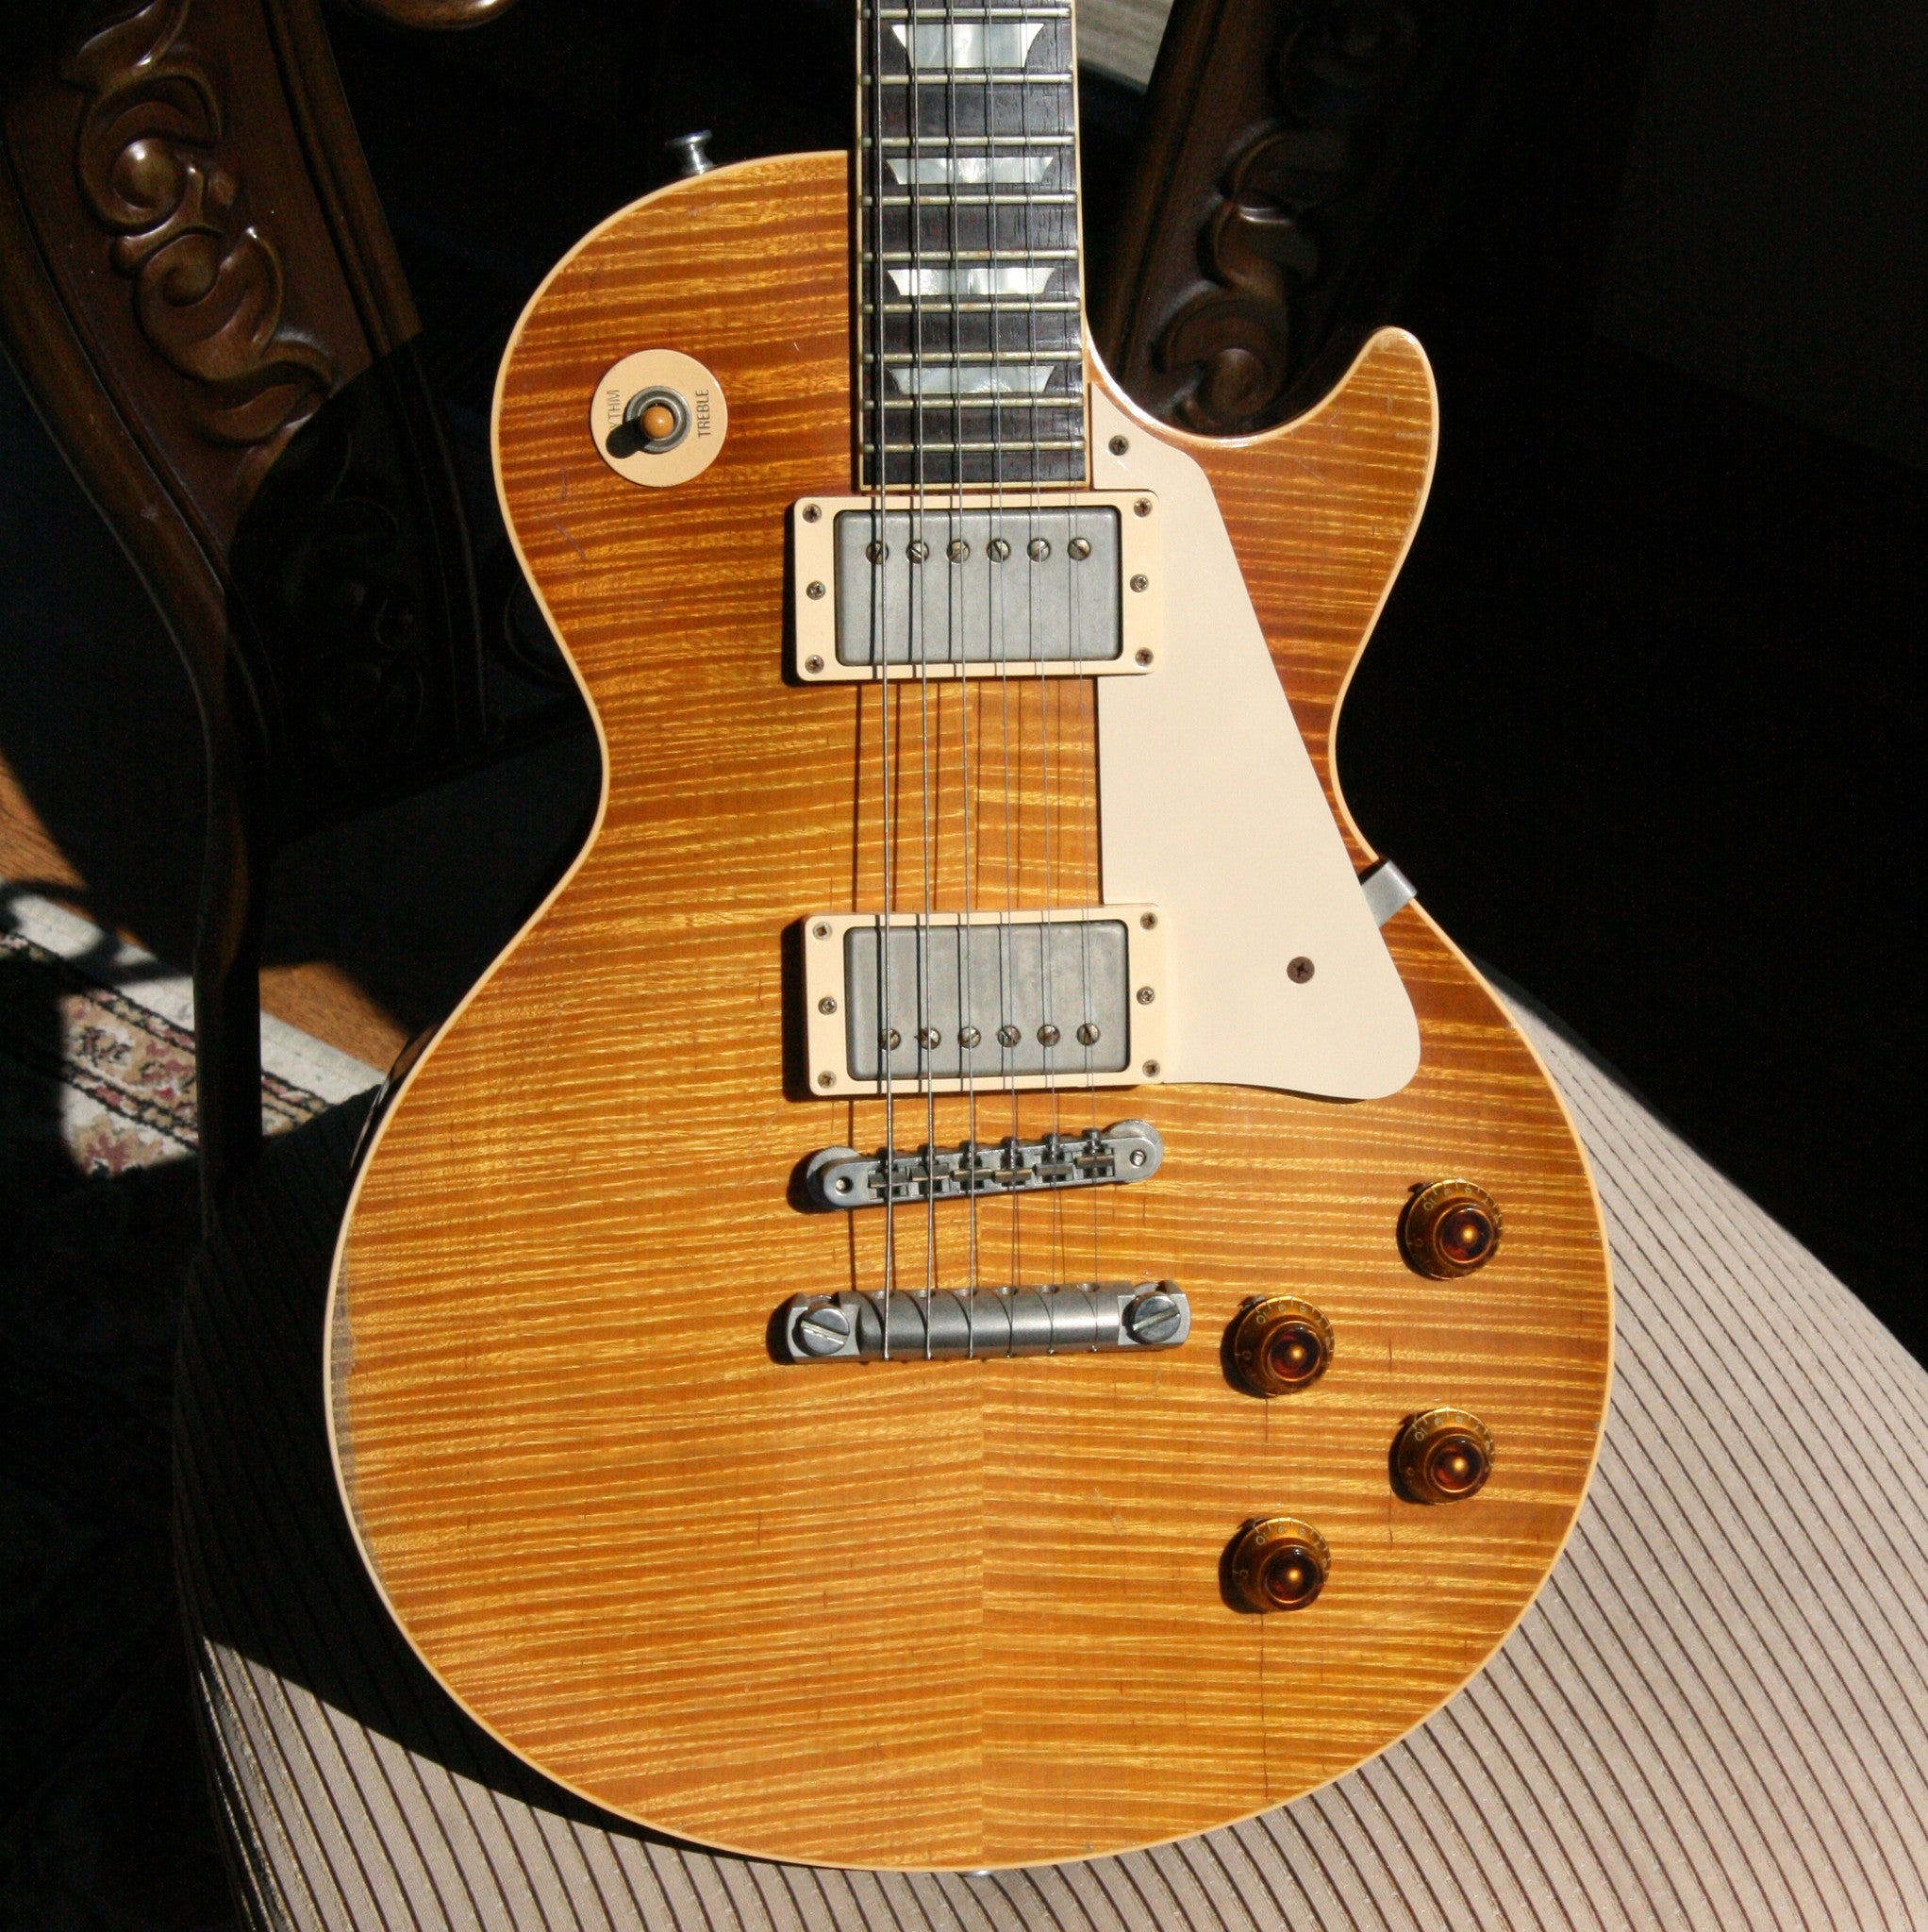 1959 Gibson HISTORIC MAKEOVERS Les Paul Reissue! BRAZILIAN ROSEWOOD Board! 2000 LP HM R9 59 Burst